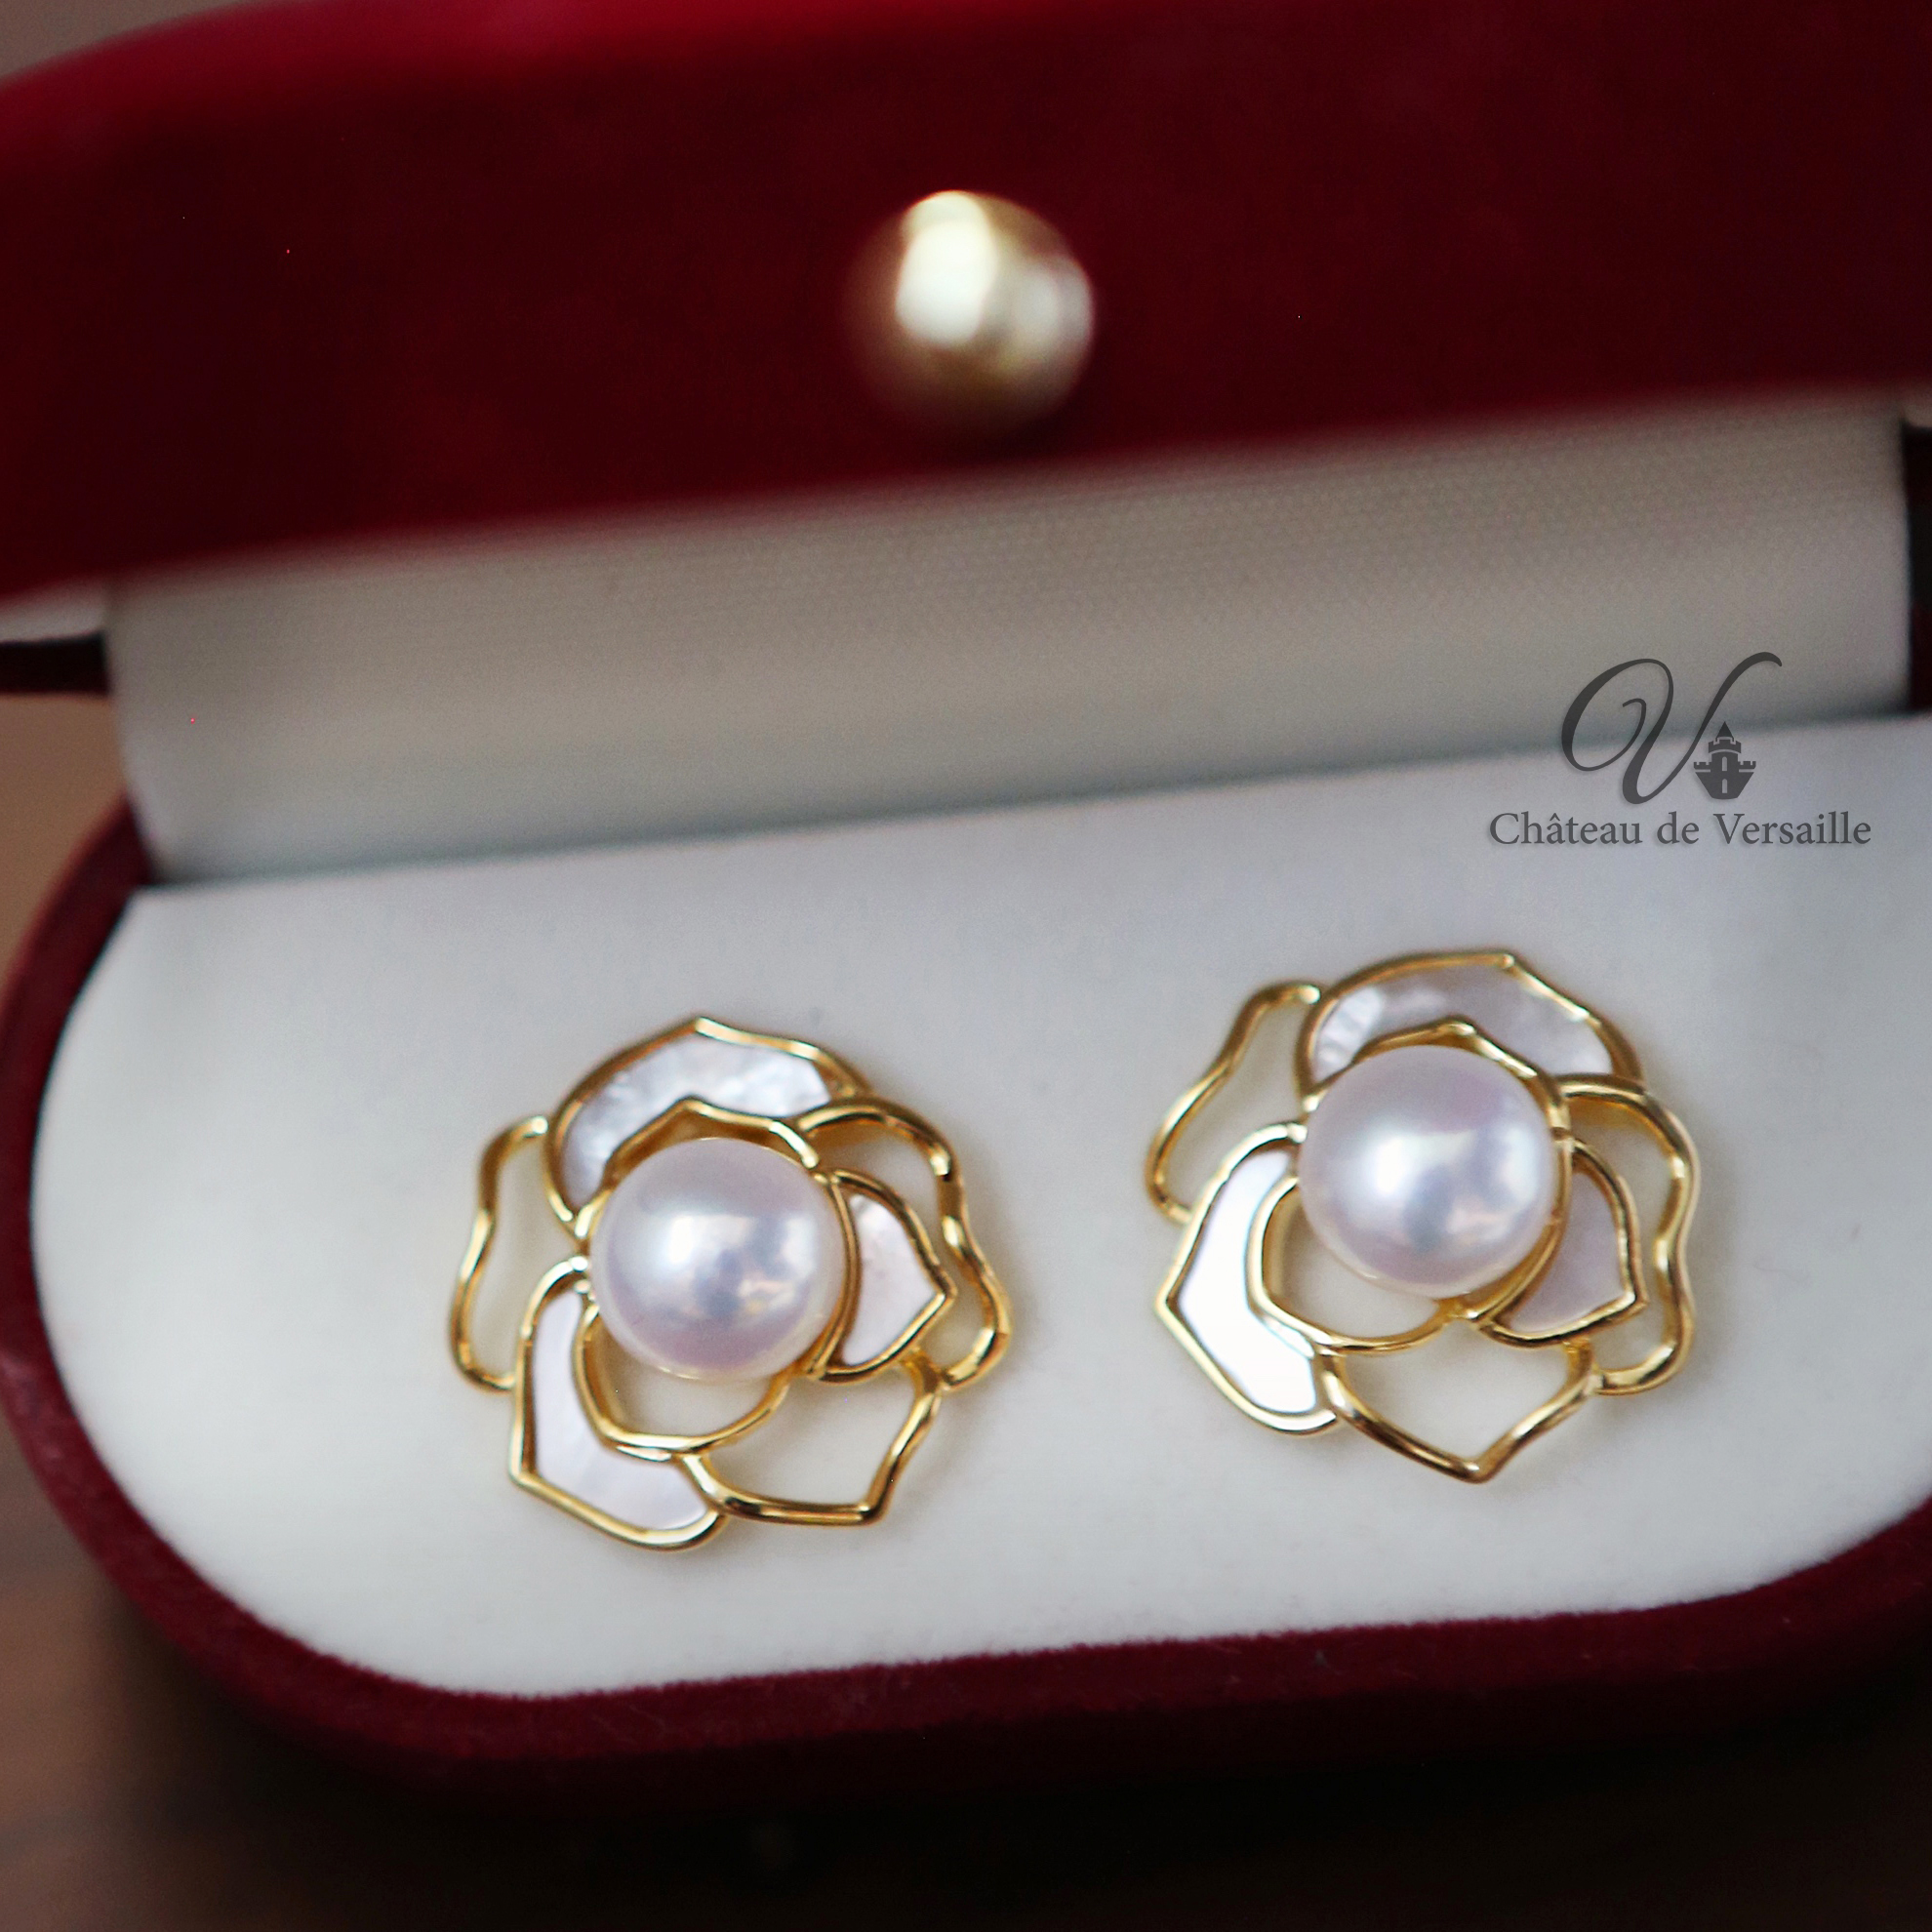 Japanese Light luxury natural white Fritillaria Earrings Camellia Fresh Water Pearl Earrings 925 silver plated gold needle Versailles Palace